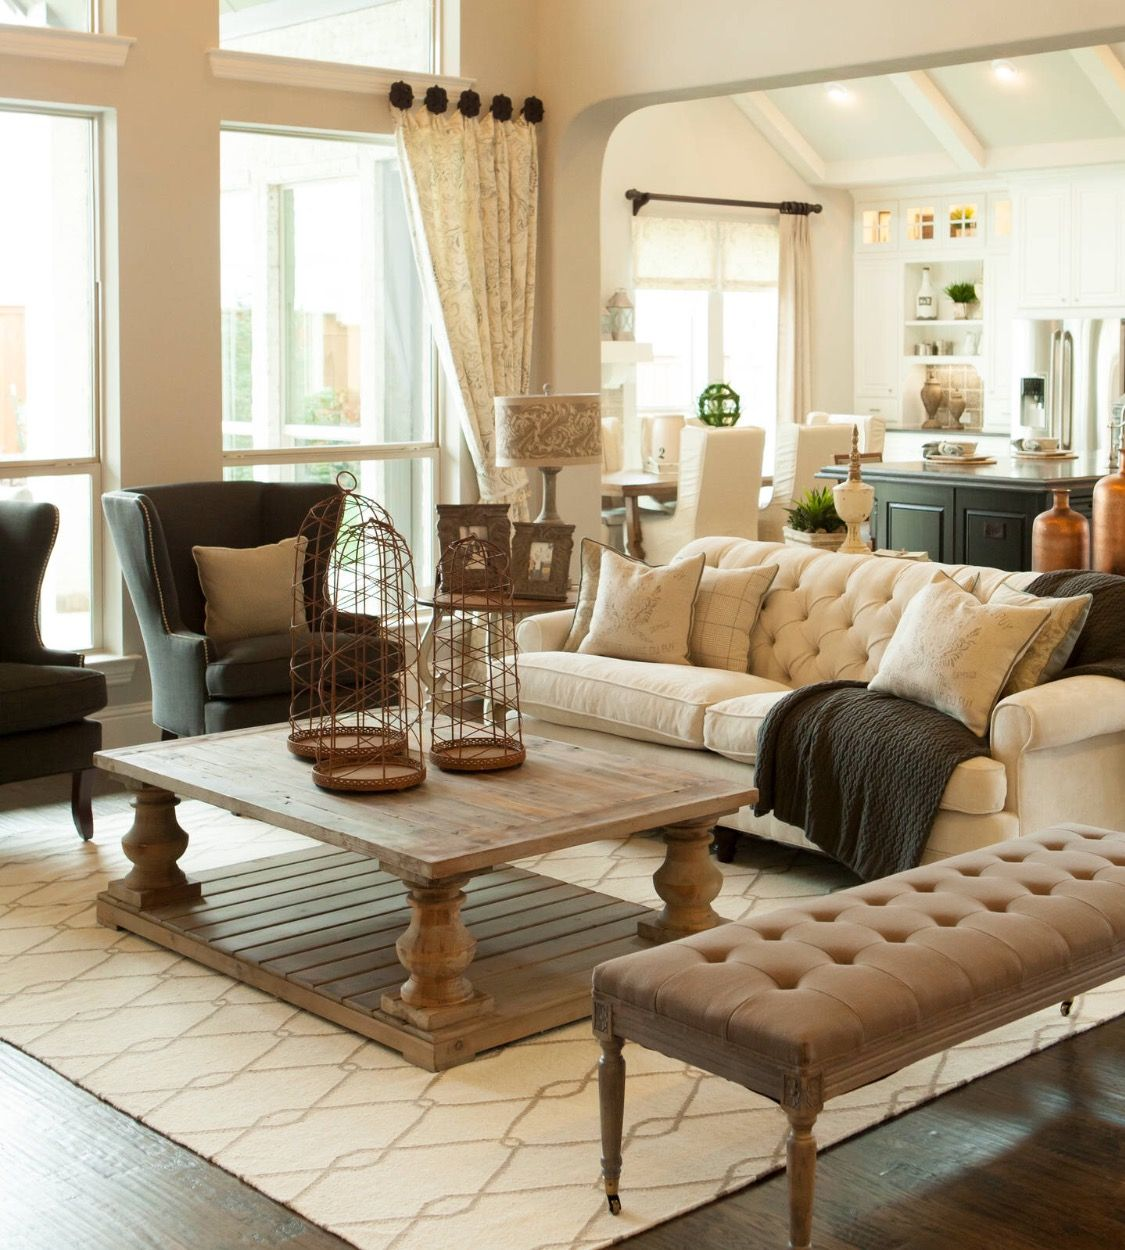 Neutral Living Room With Traditional Fireplace In 2019: For The New House In 2019